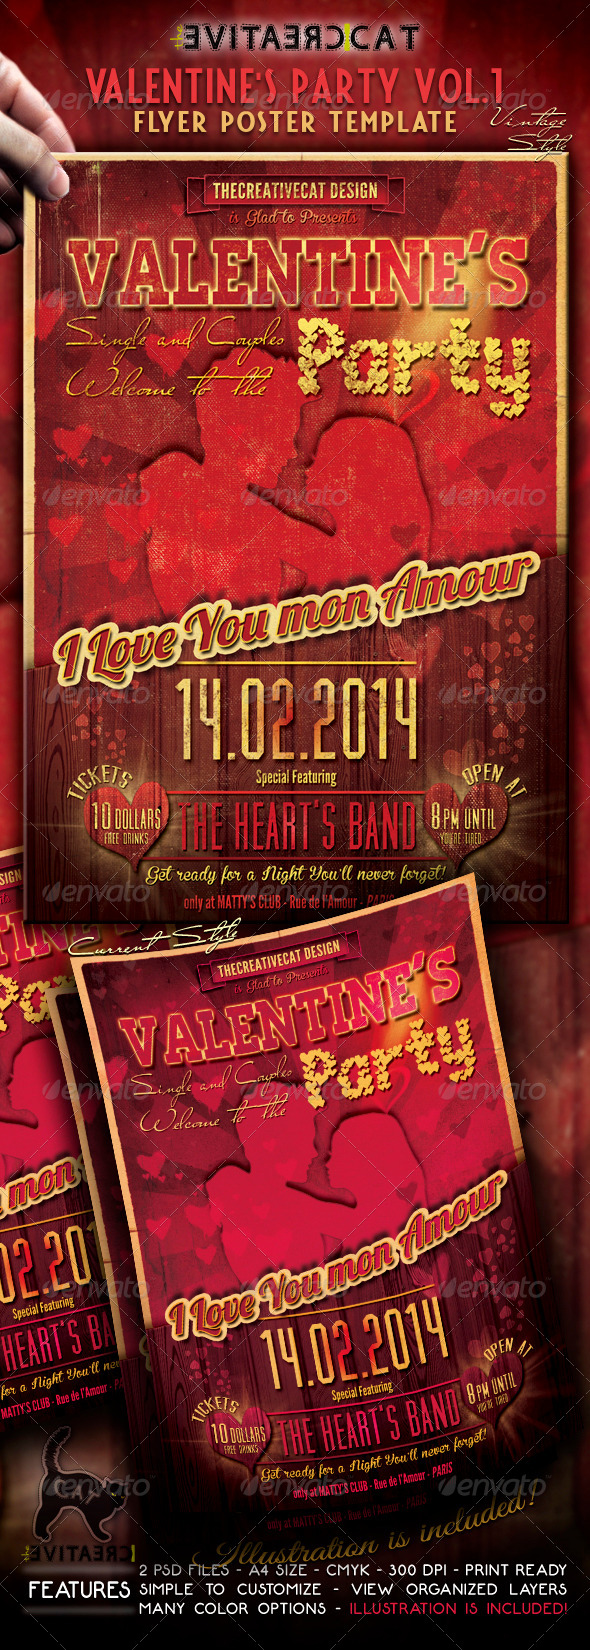 Valentine's Party Flyer/Poster Vol. 1 - Events Flyers